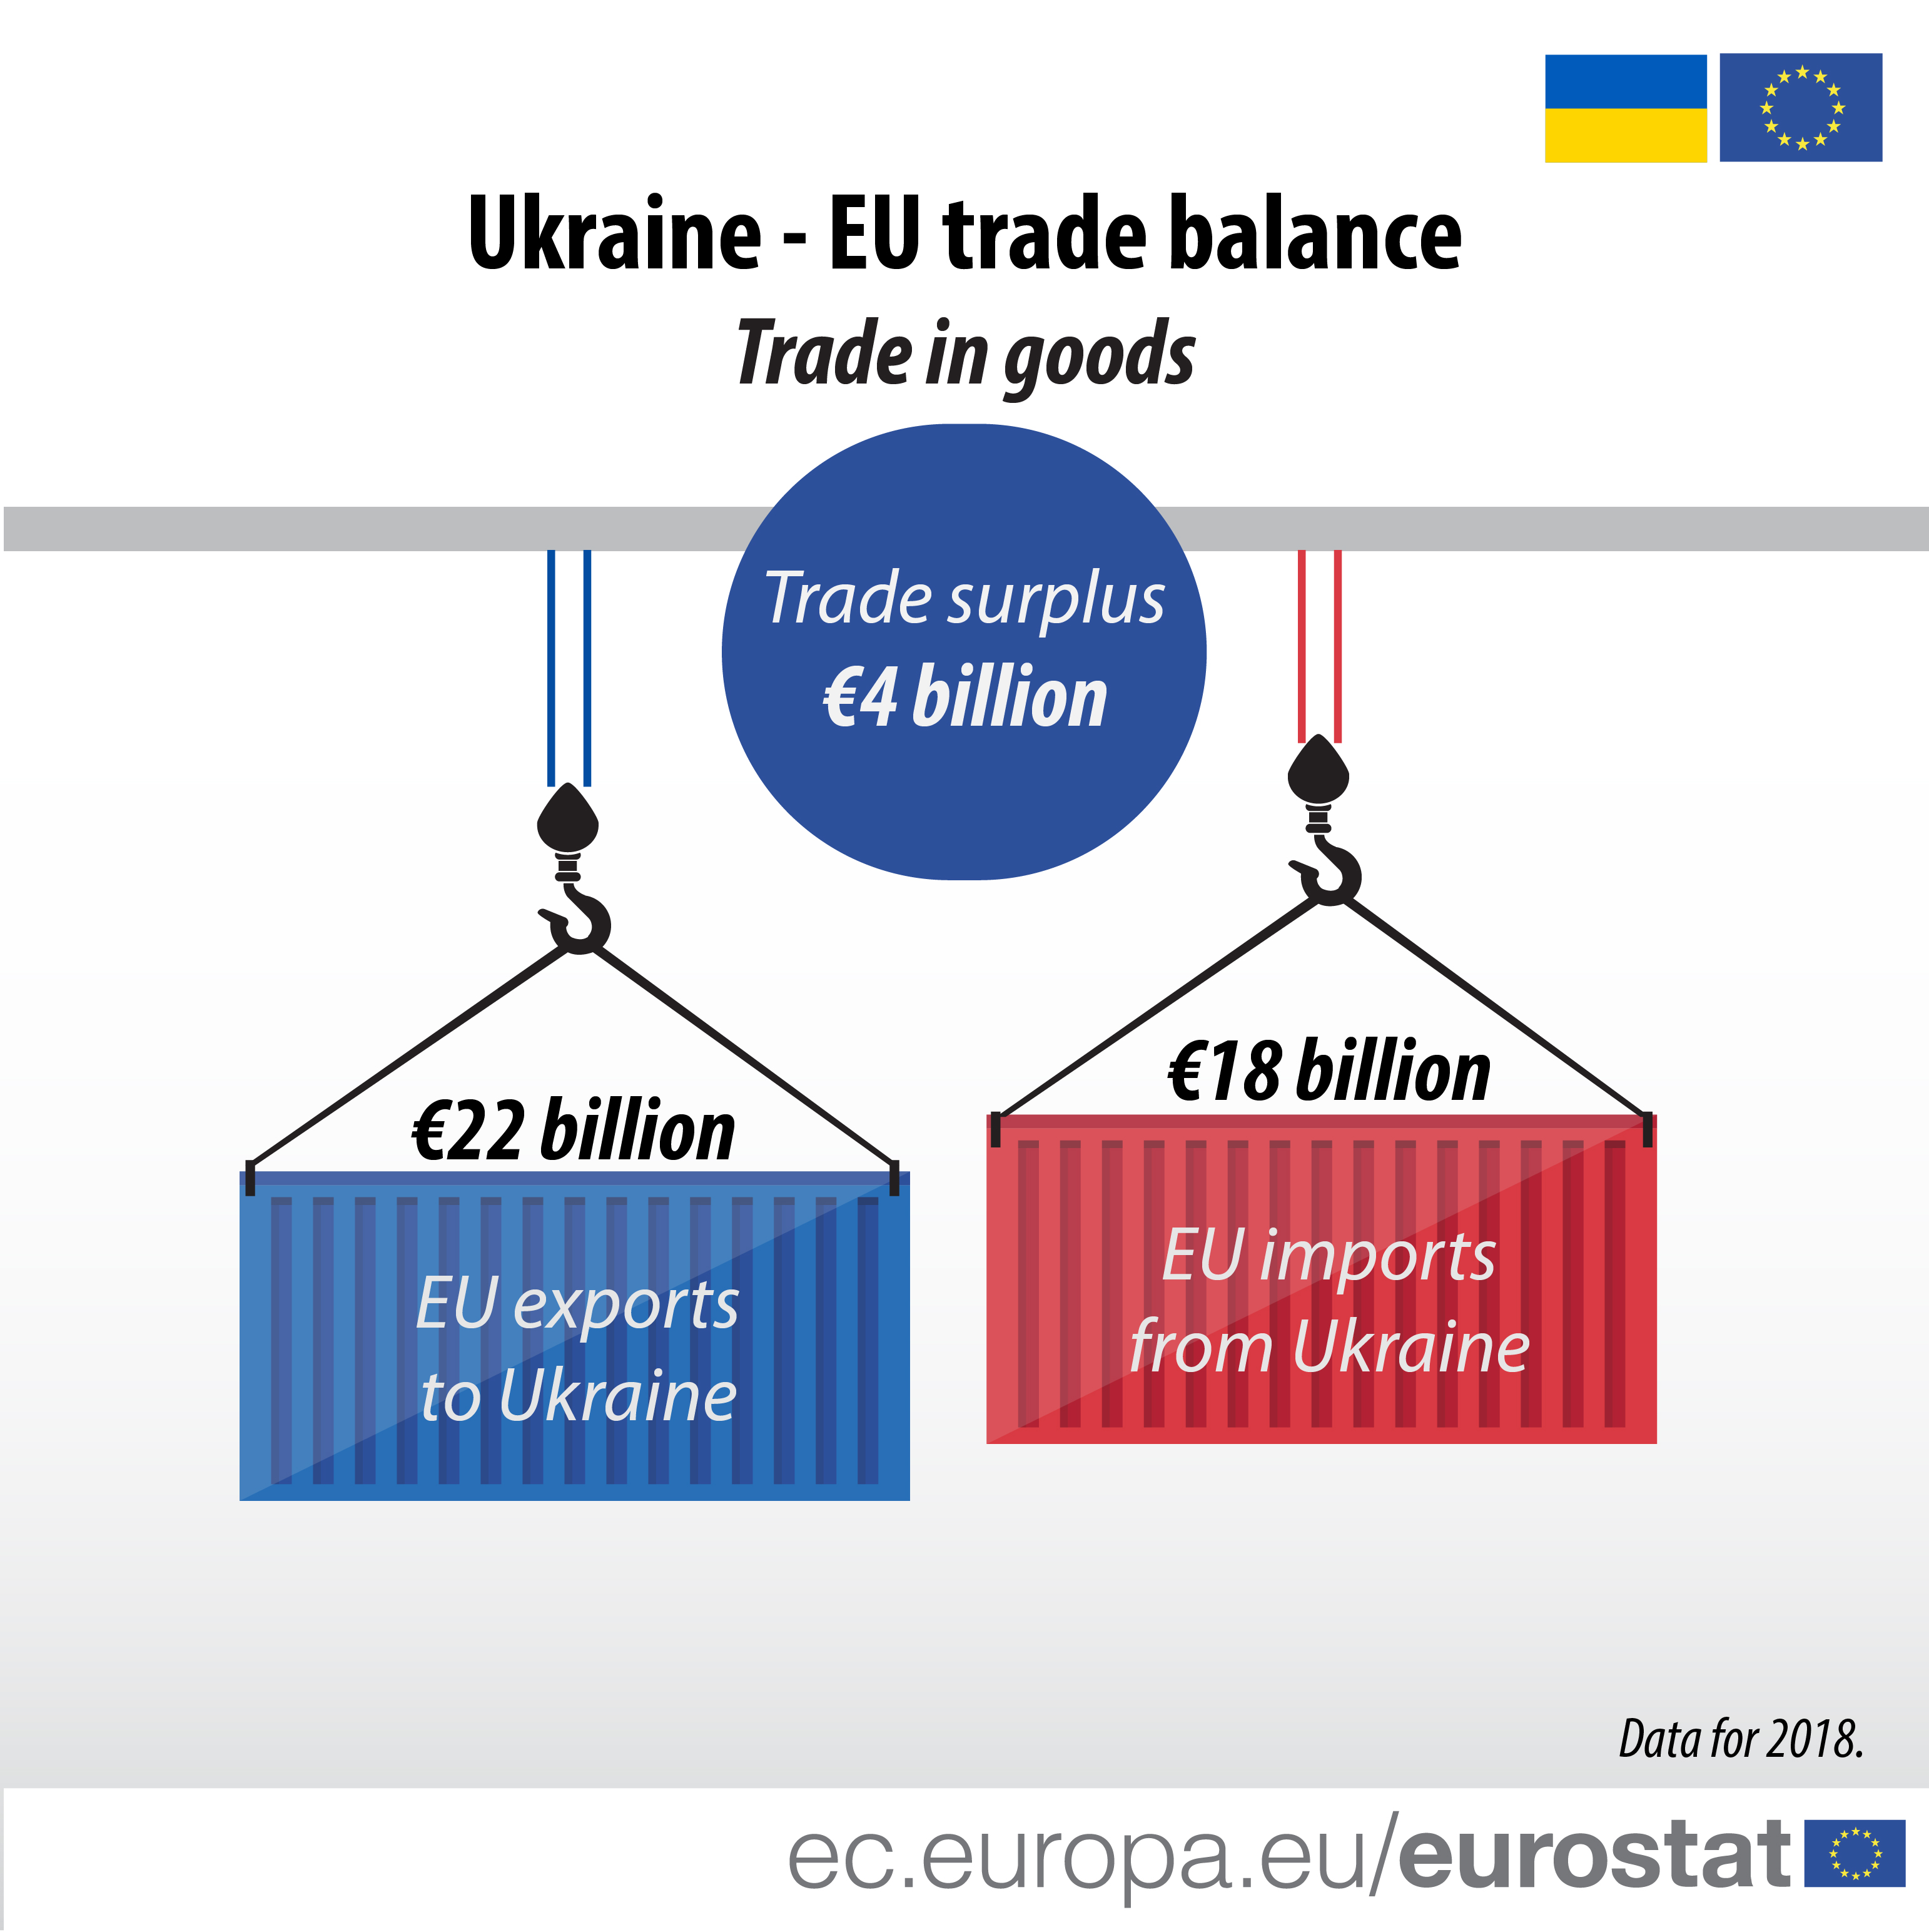 Infographic showing Ukraine-EU trade balance in 2018